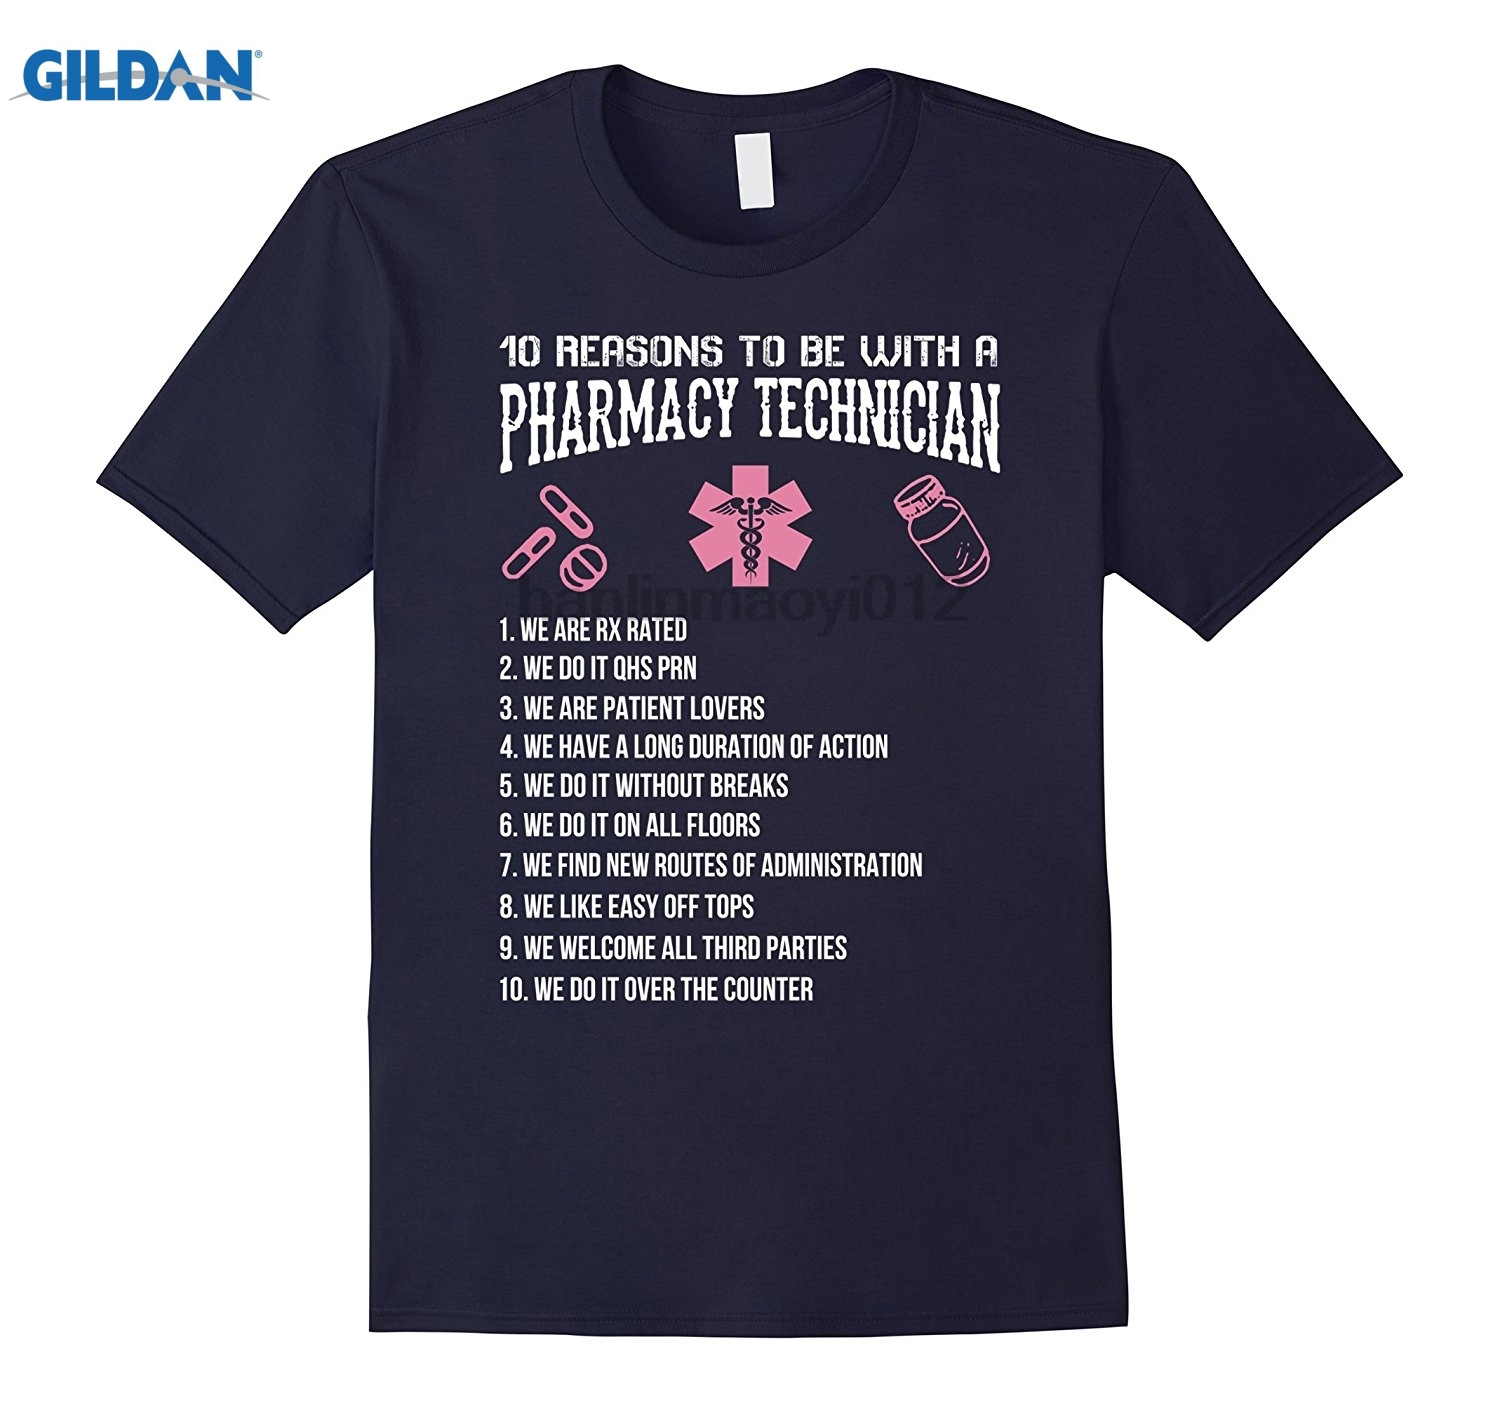 GILDAN 10 Reasons To Be With A Pharmacy Technician Shirt sunglasses women T-shirt